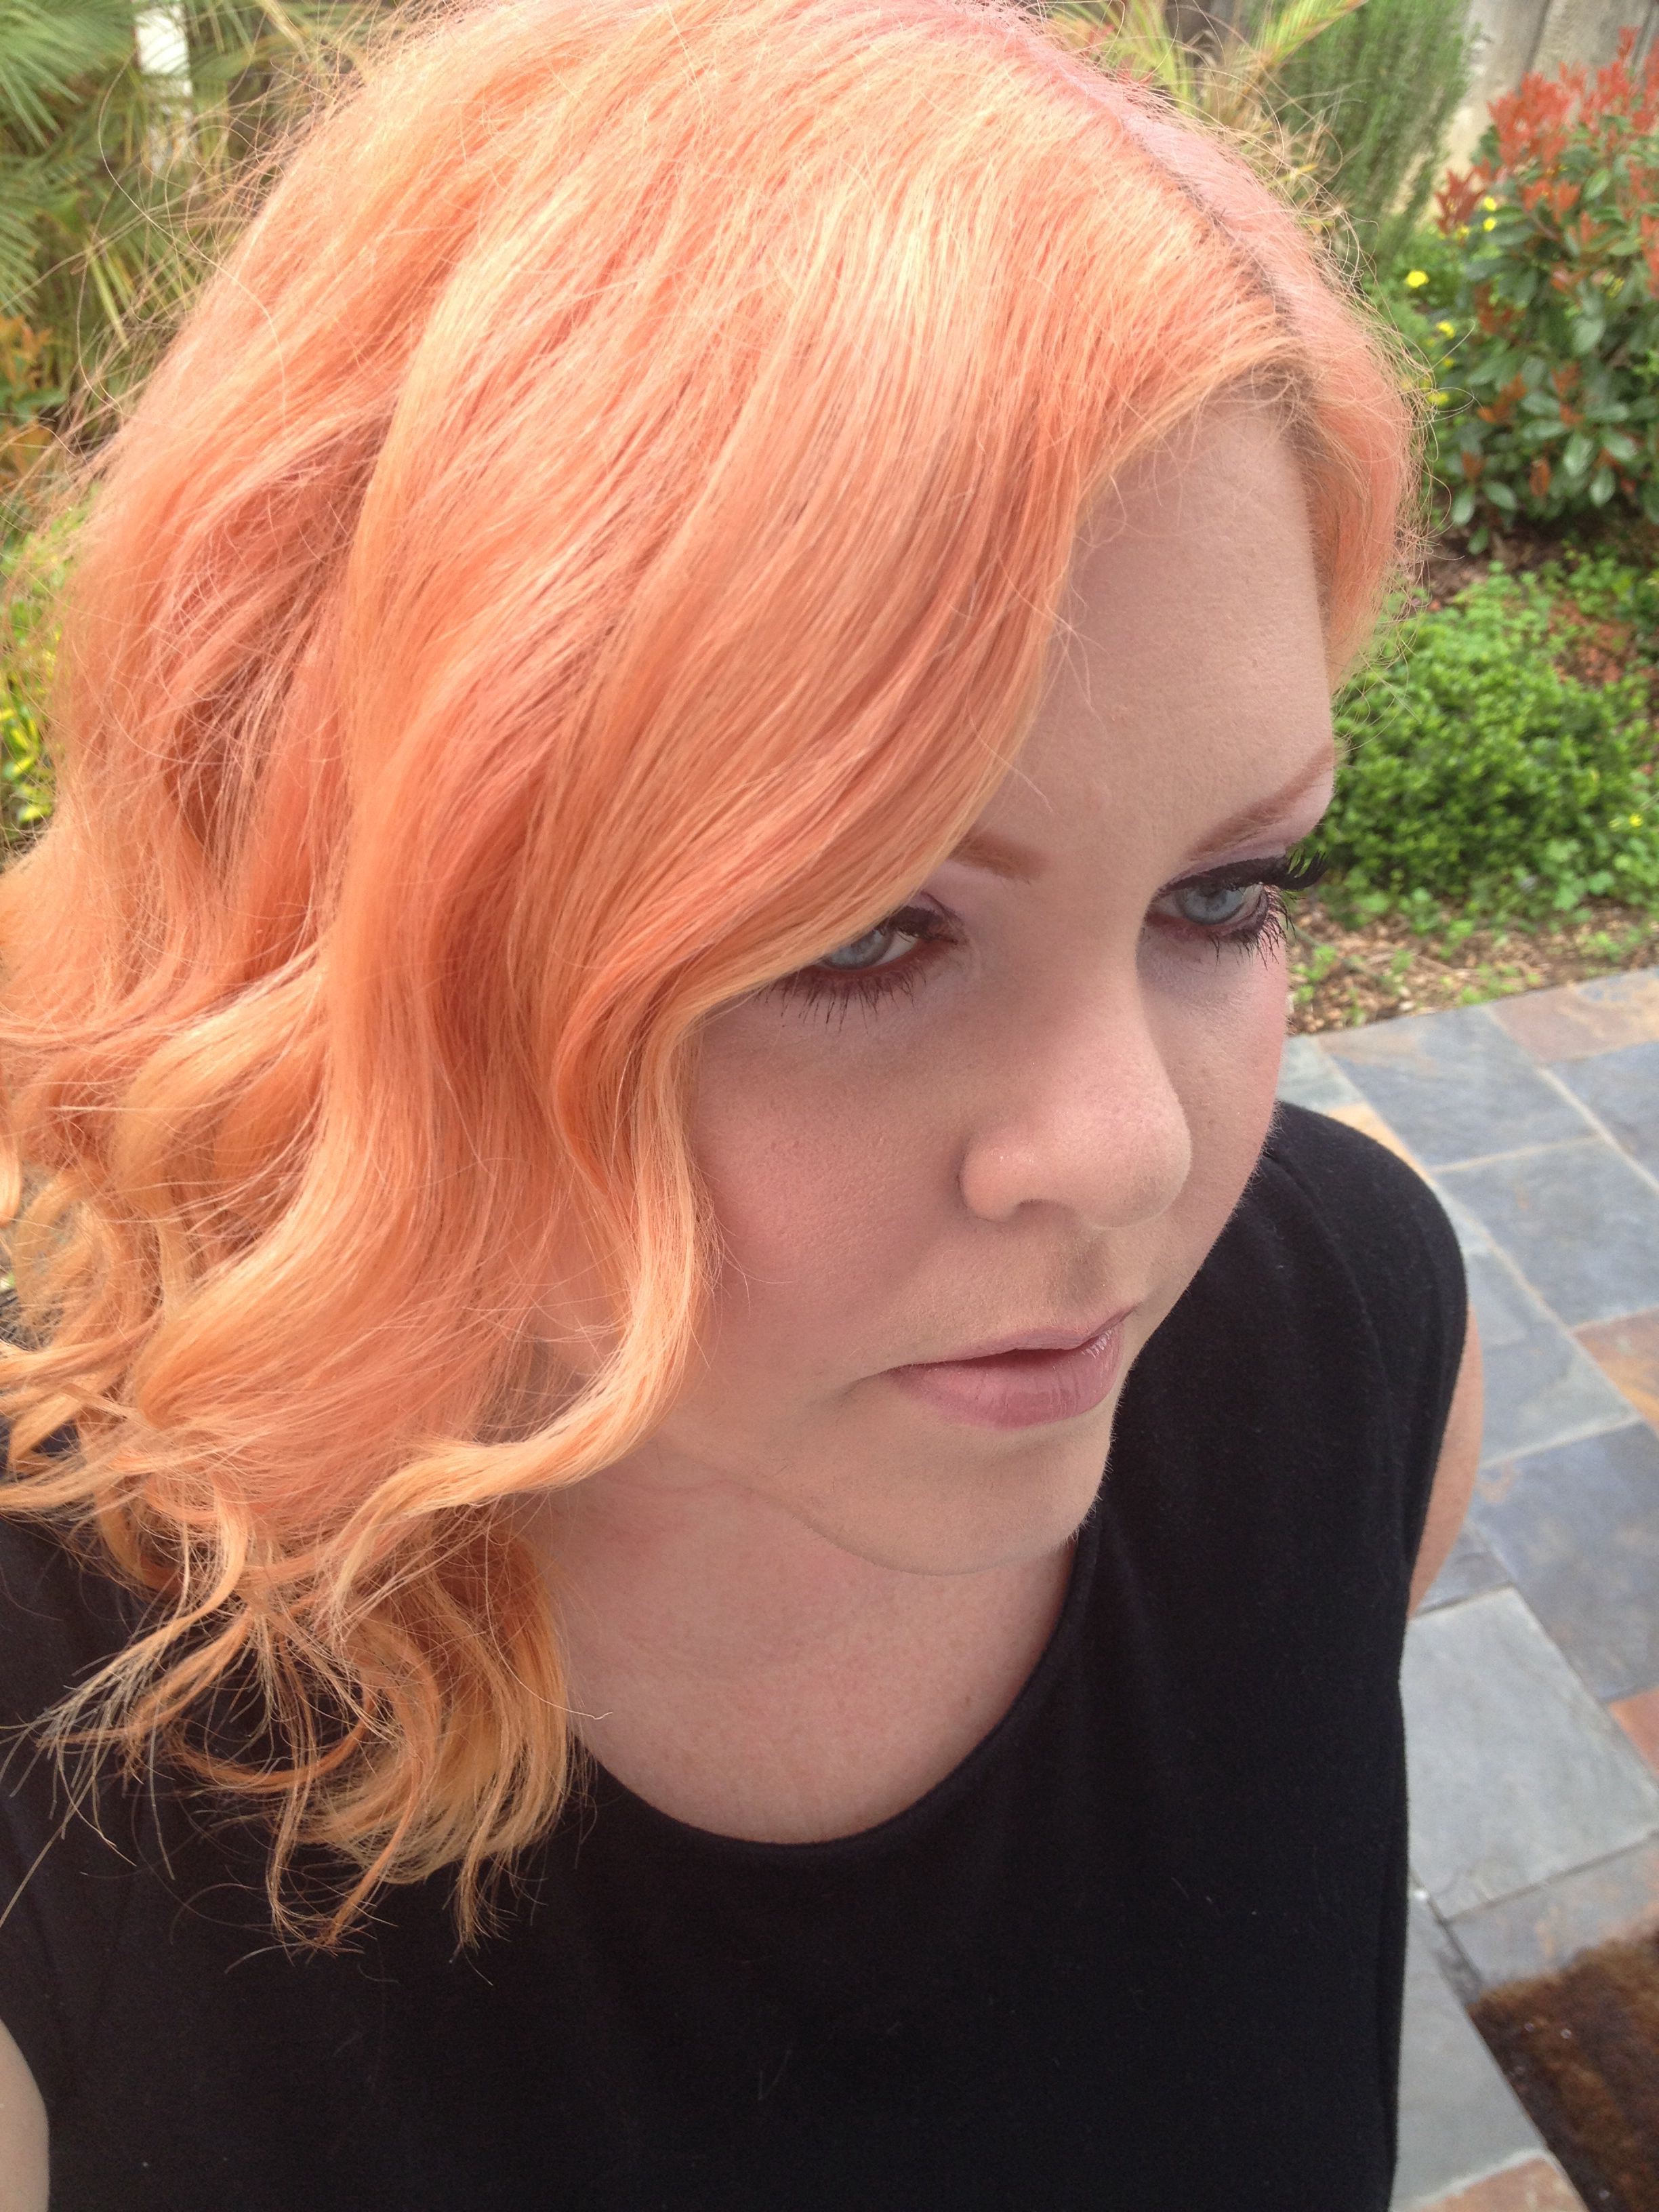 My Rose Gold Hair Took Two Weeks Of Fading The Hot Pink And Orange Adore Brand Hair Dyes Used A Curling Wand To Get The Waves Hair Styles Hair Hair Trends